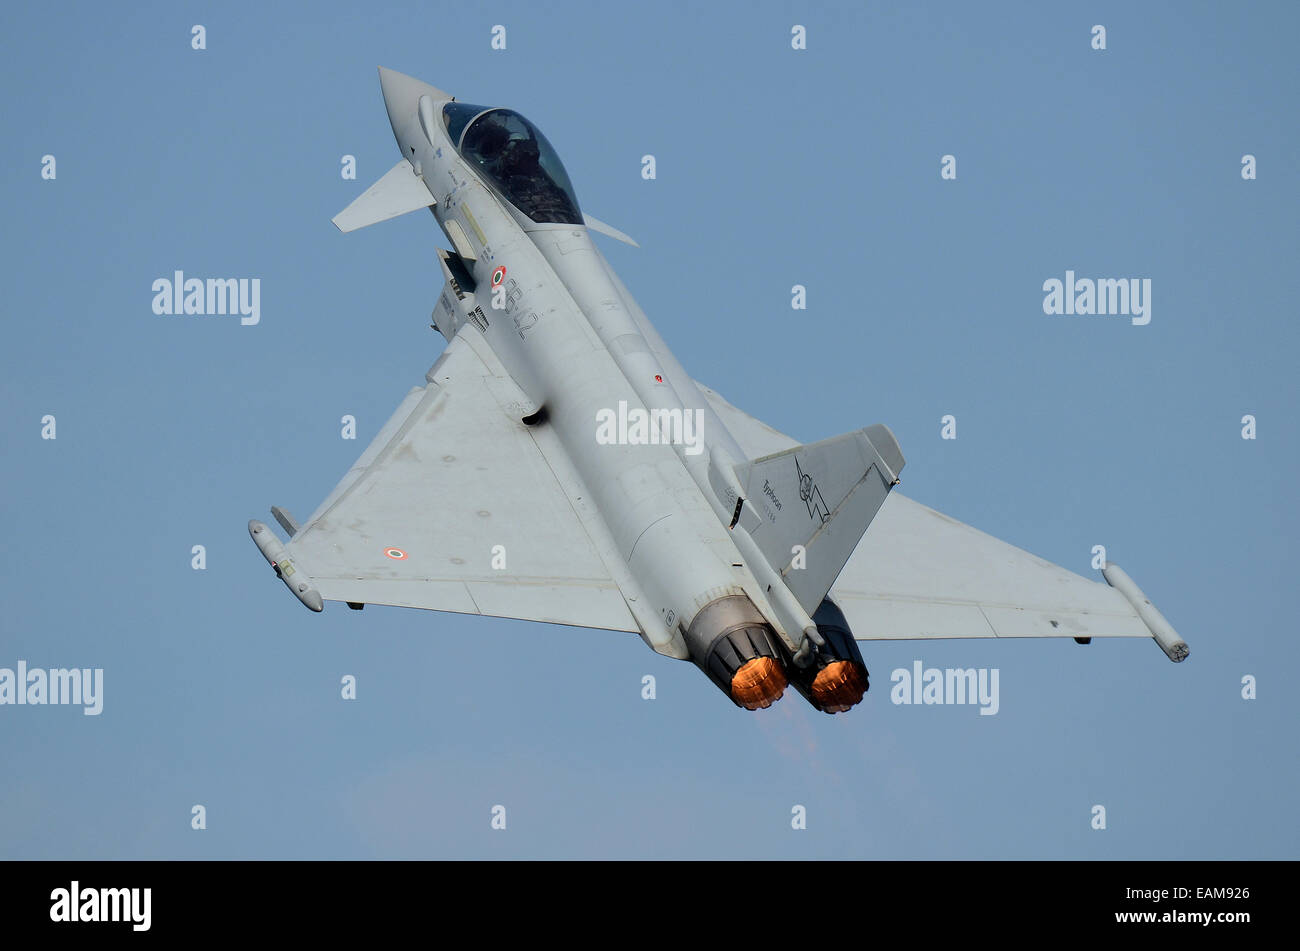 The Eurofighter Typhoon is a twin-engine, canard-delta wing, multirole fighter in service with a number of countries. Stock Photo